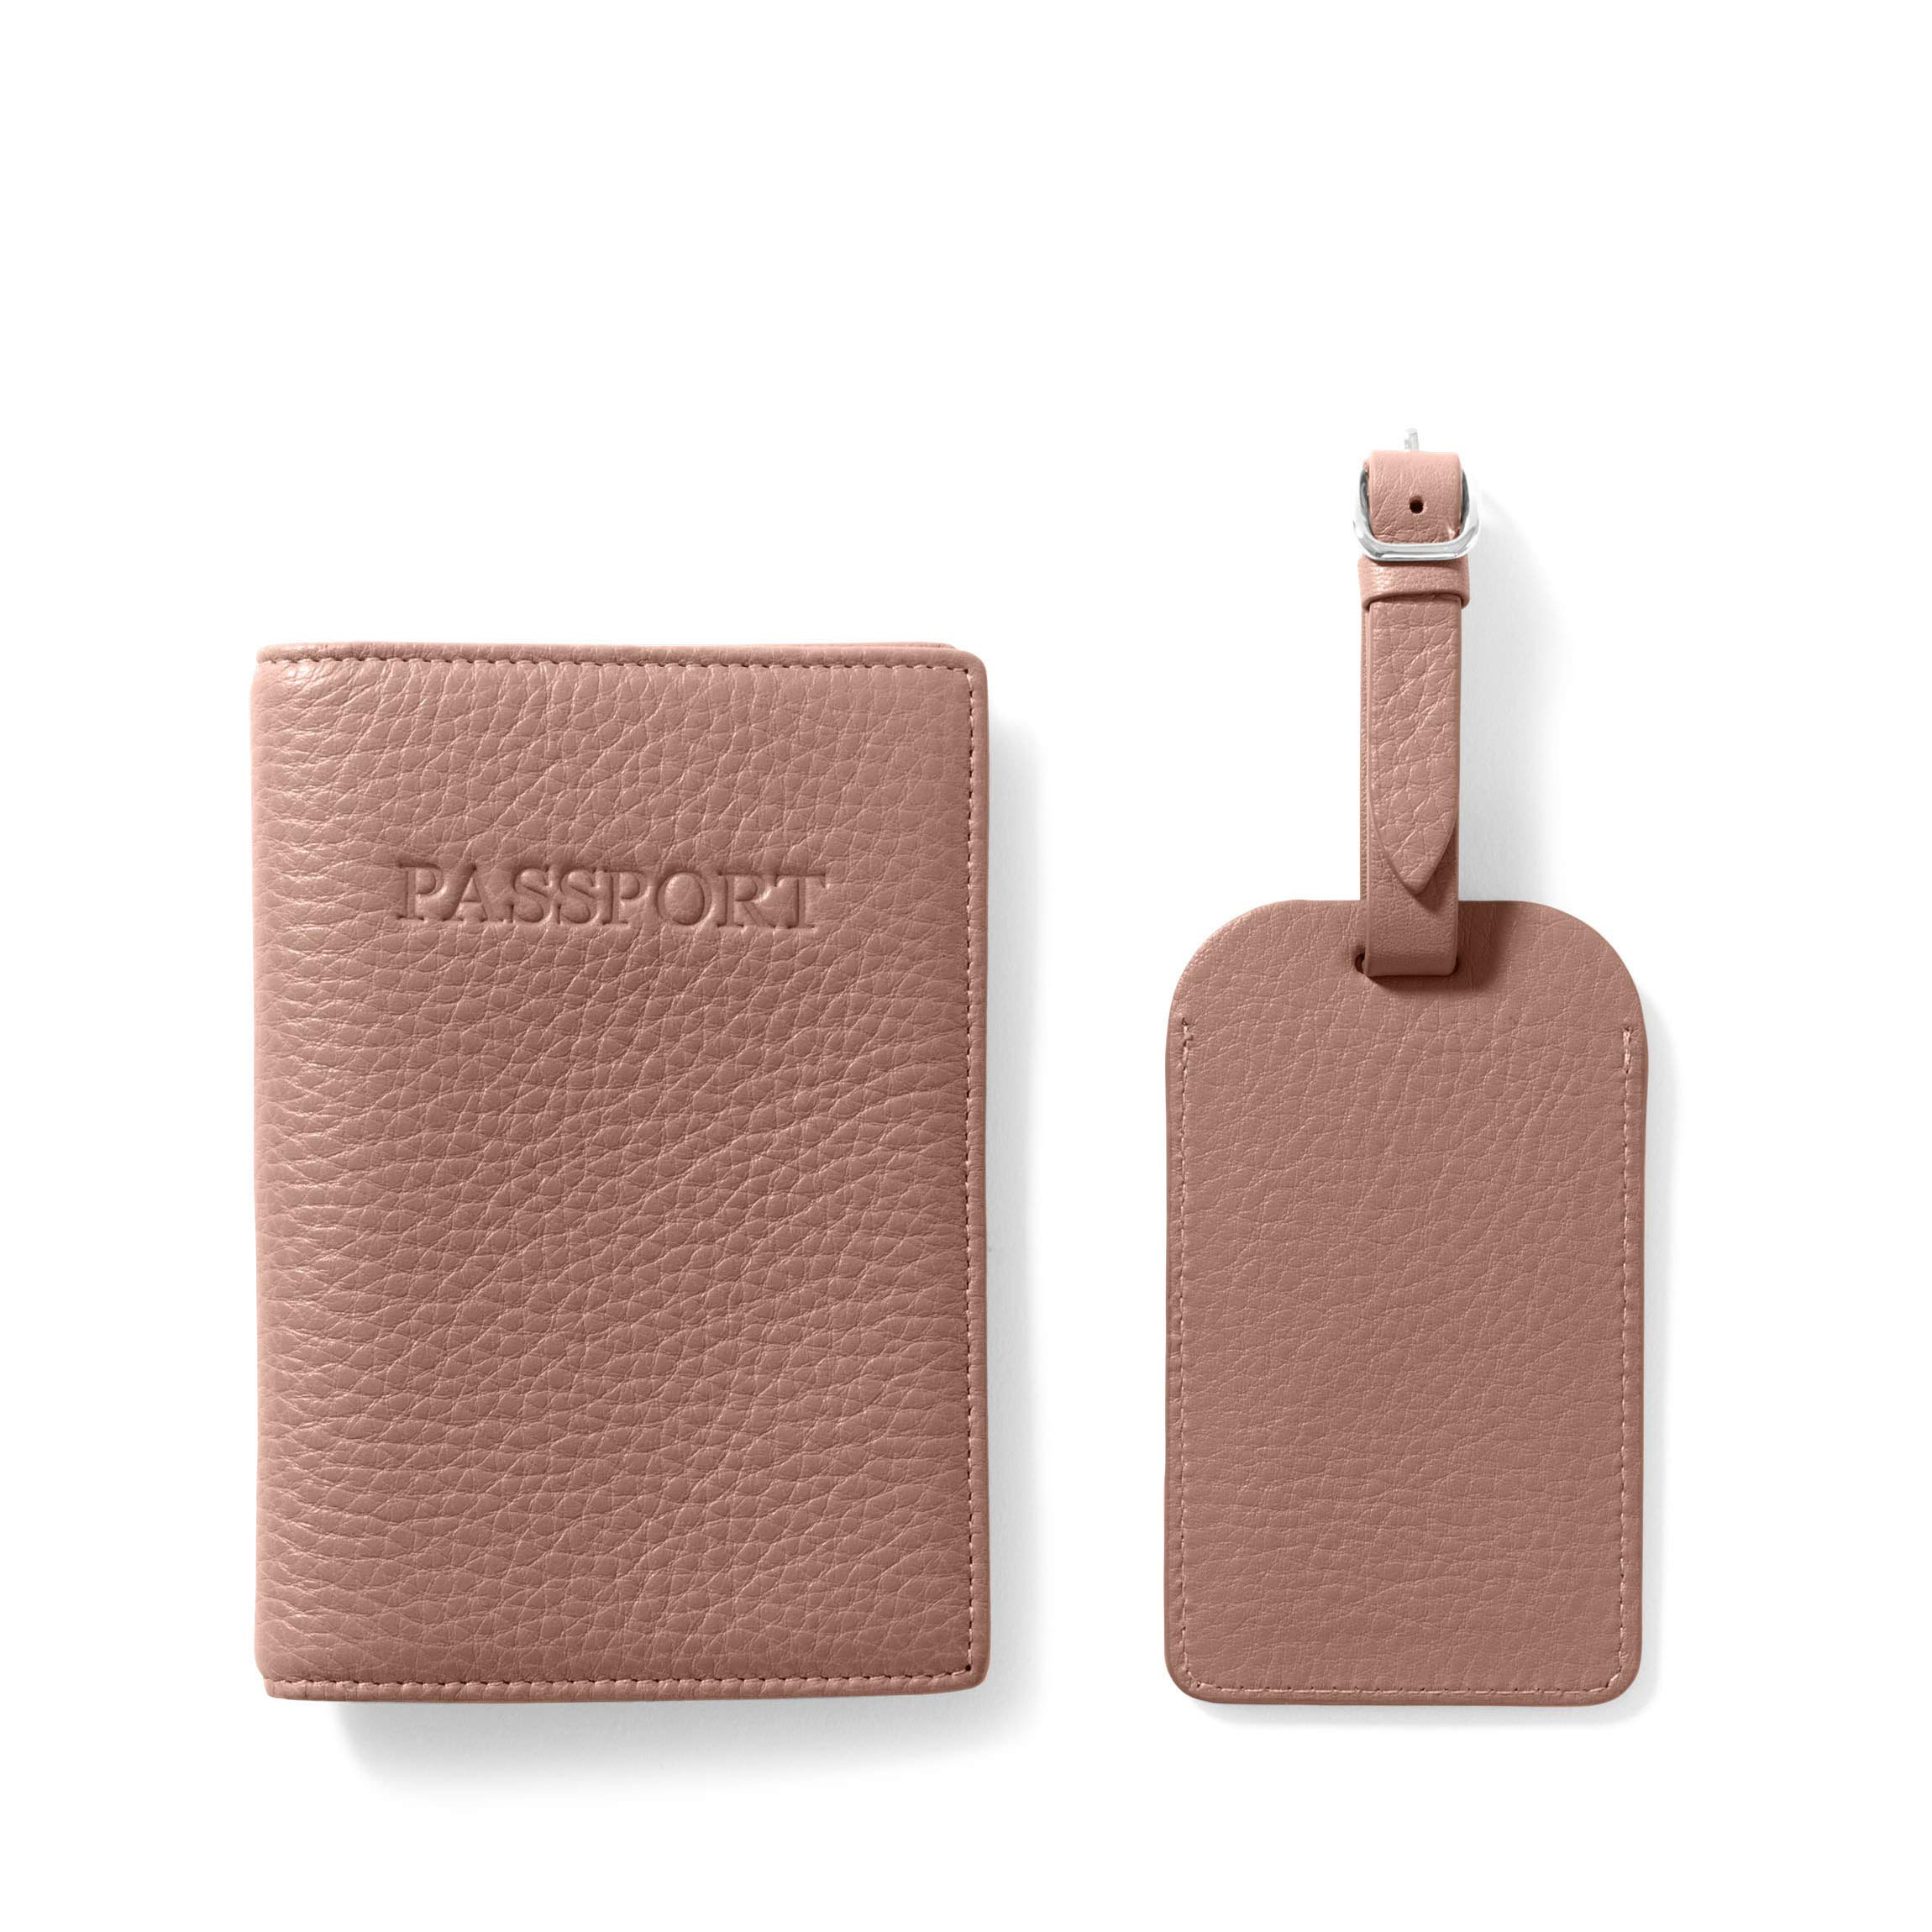 Passport Cover + Luggage Tag - Full Grain Leather Leather - Mauve (Pink)